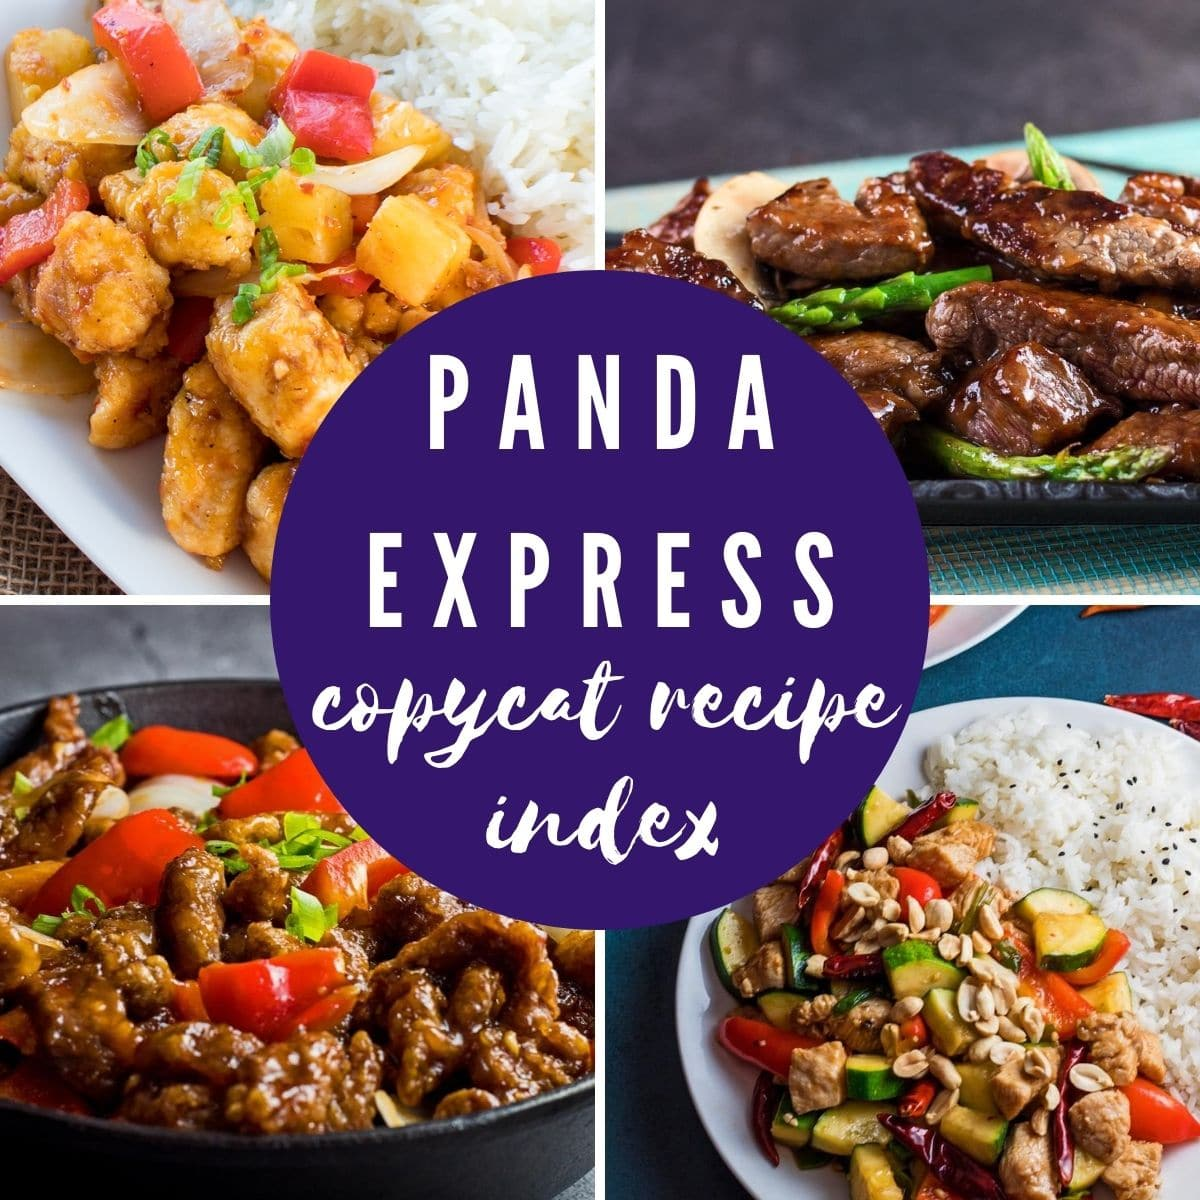 collage of four panda express recipe images with a transparent brick red overlay for text title 'Panda Express copycat recipe index'